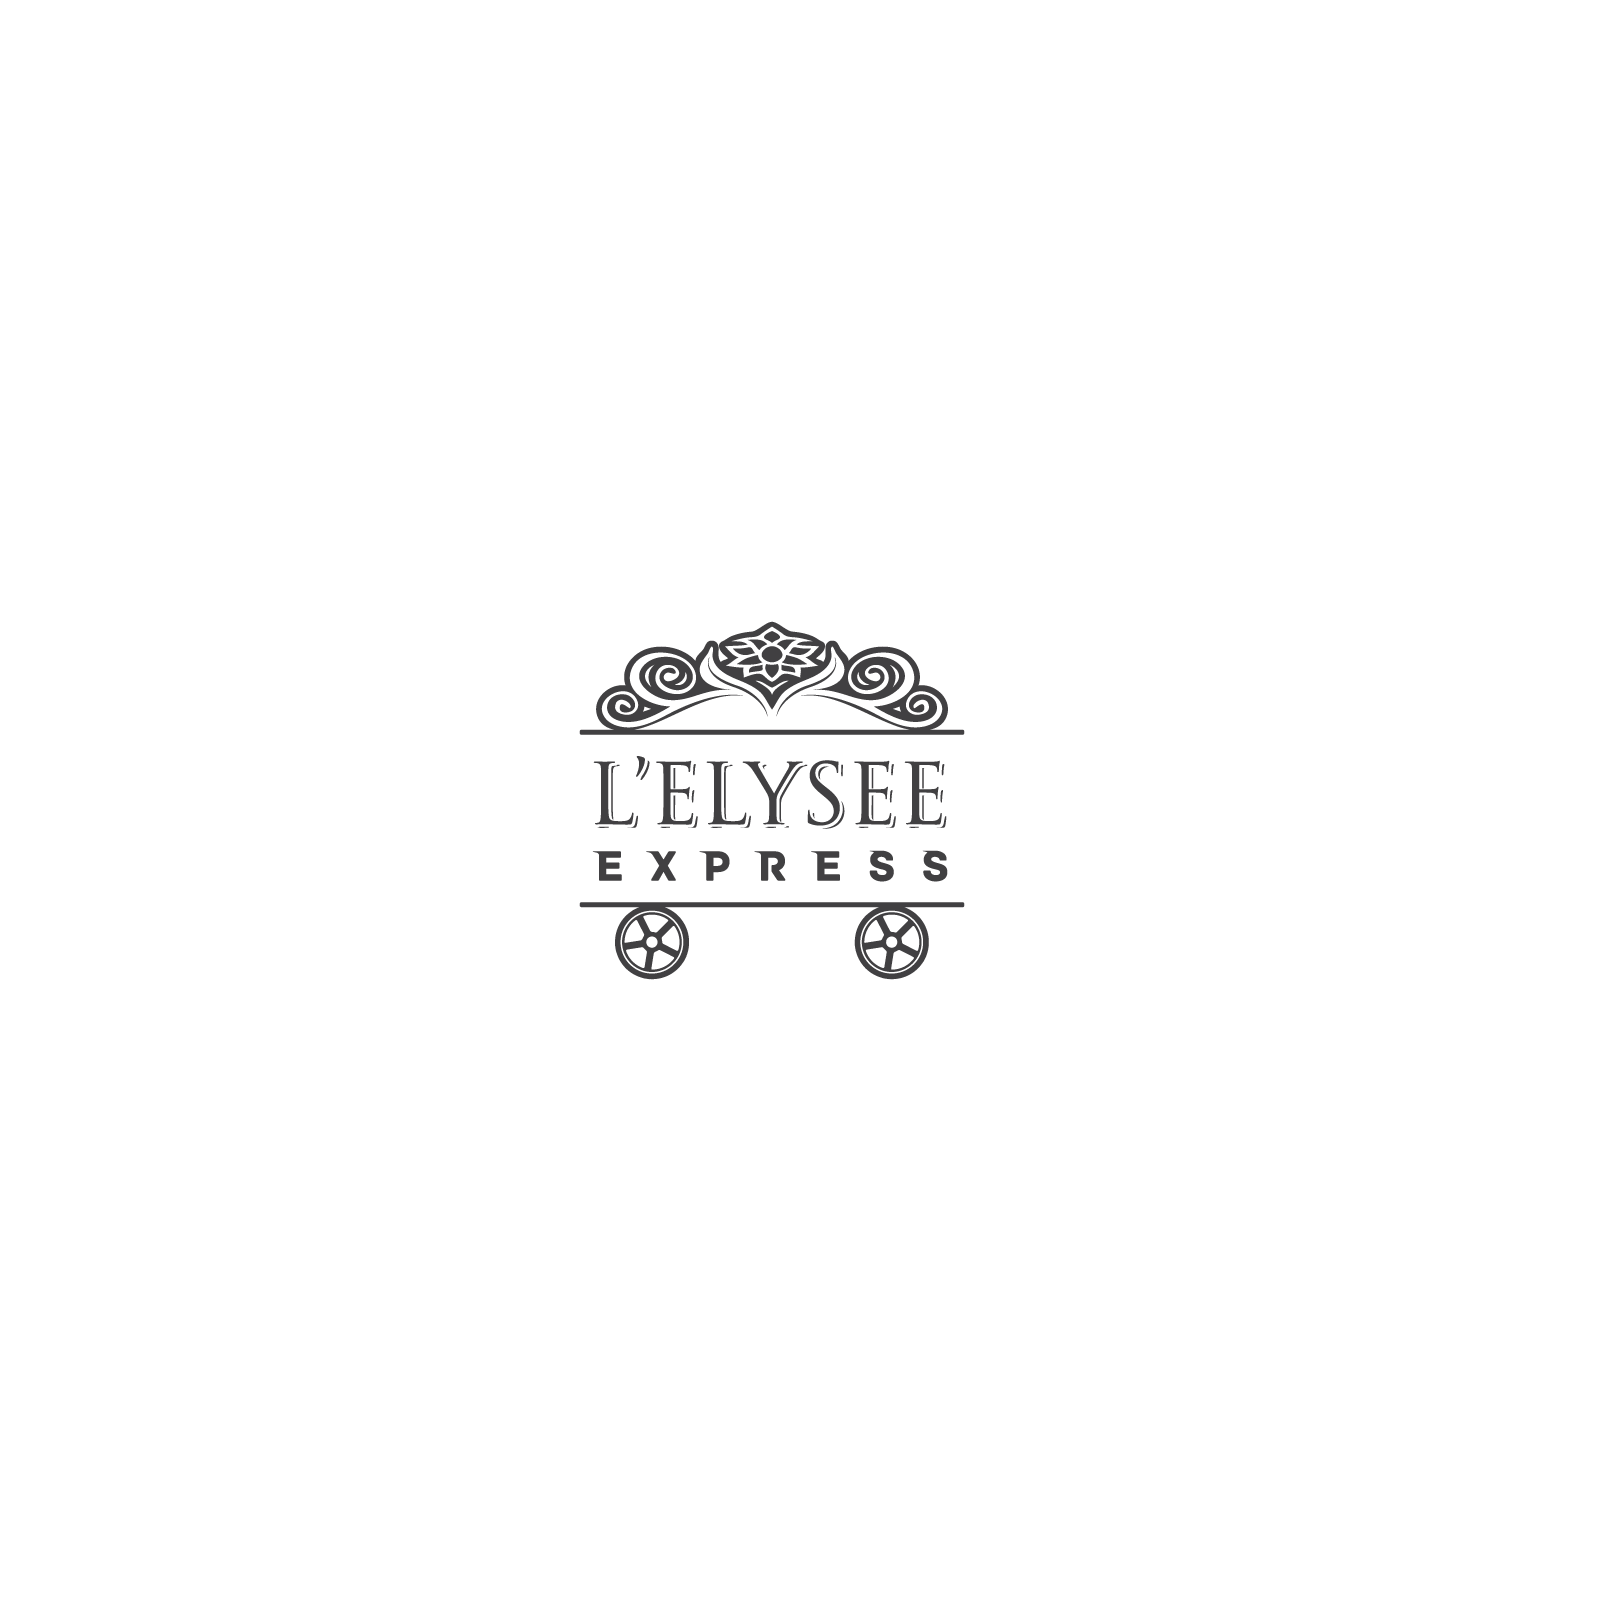 Redesign of L'elysee Artisan logo.